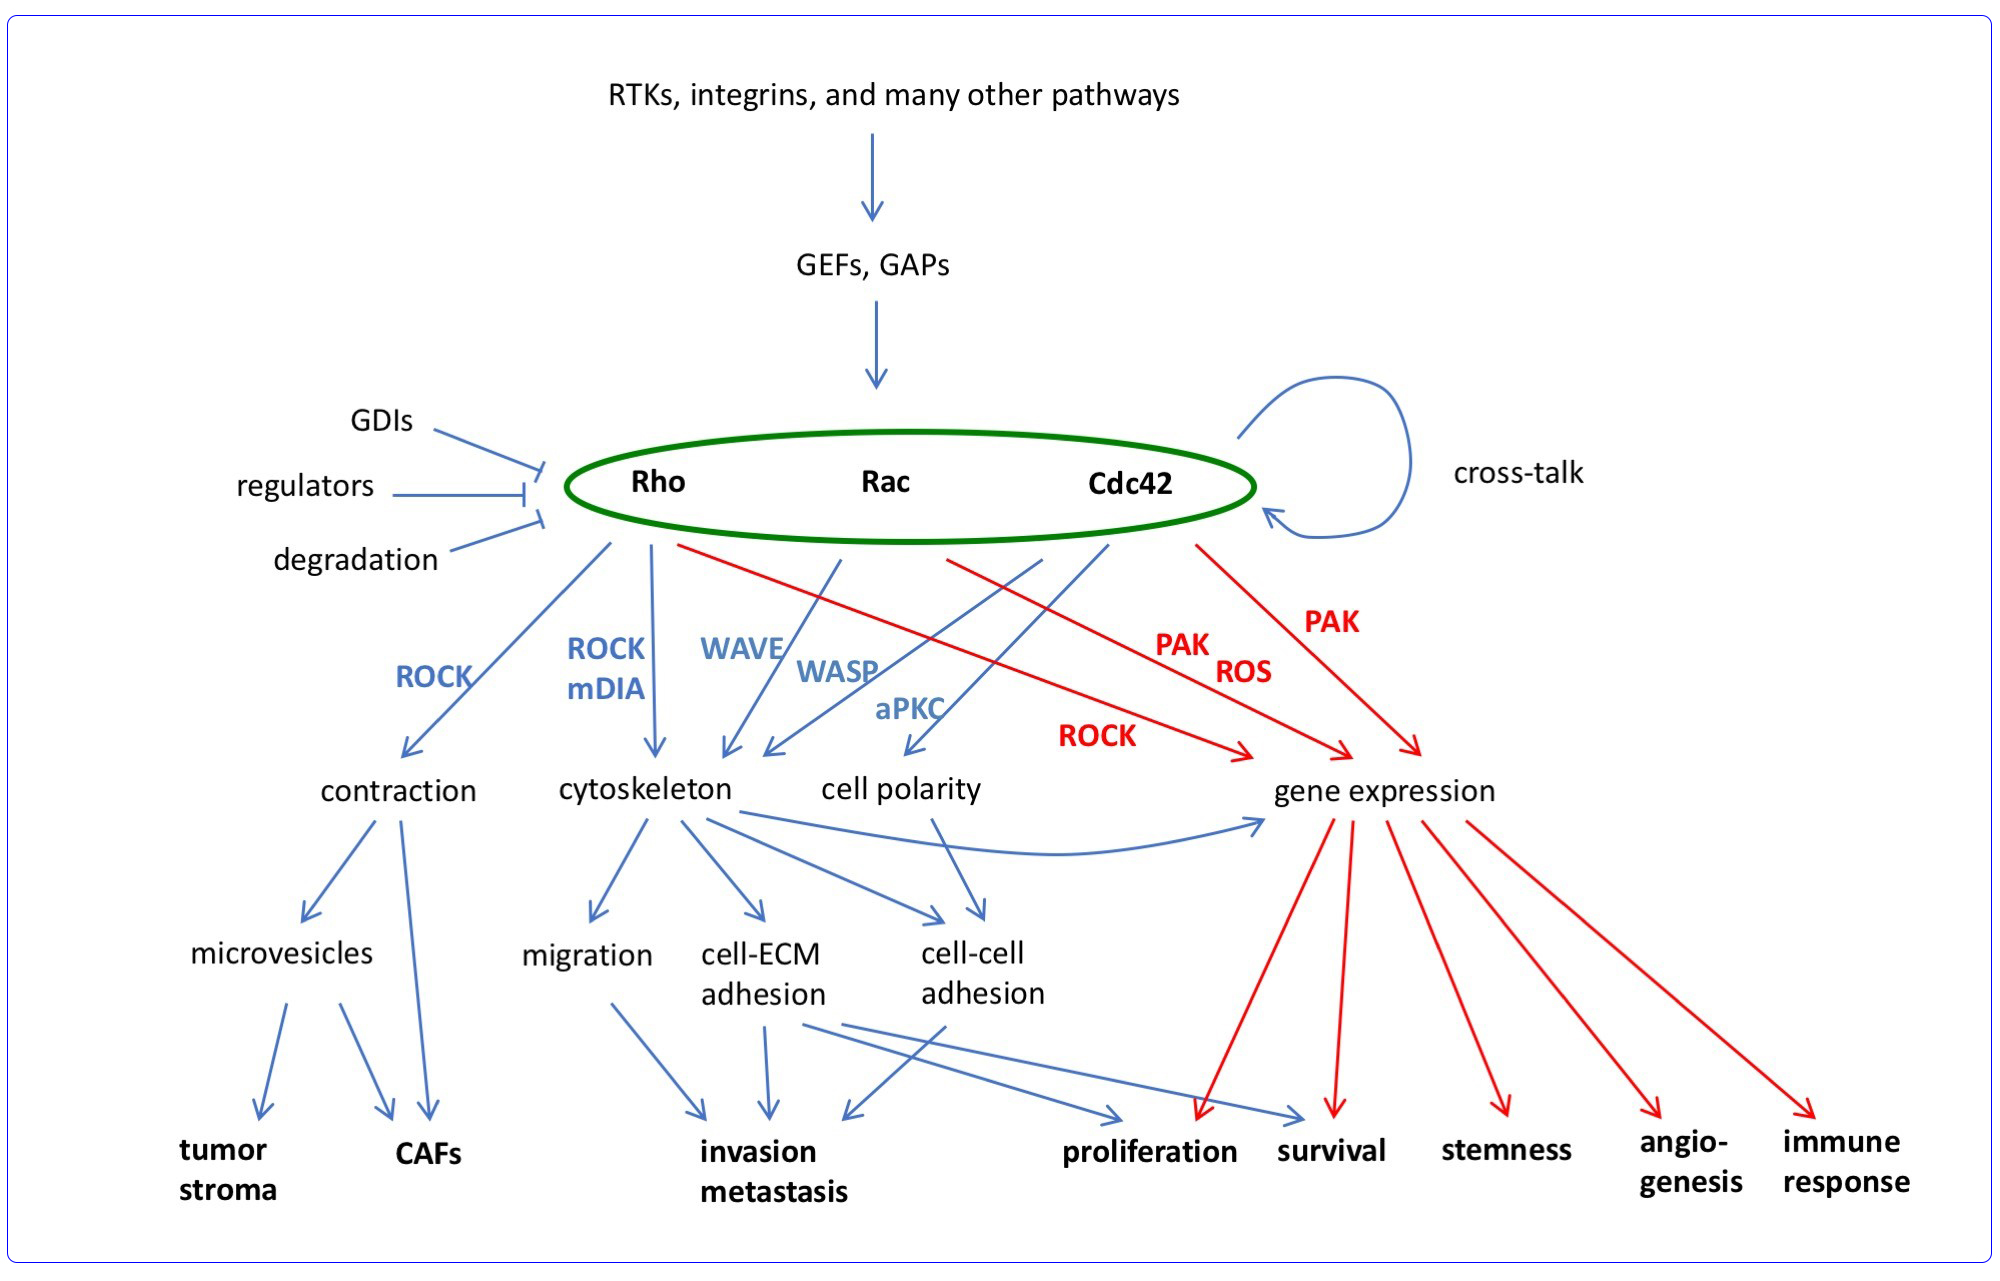 Overview of tumor relevant functions of Rho GTPases. Simplified scheme showing major regulation and effector pathways of Rho GTPases in cancer with a focus on Rho, Rac, and Cdc42. Important effector pathways are indicated beside the corresponding arrows. Rho GTPases regulate invasion and metastasis particularly by controlling cytoskeletal organization. Rho GTPase‐dependent gene expression controls stemness, angiogenesis, and immune response, while proliferation and survival are affected by cytoskeleton and gene expression. Rho‐dependent cell contraction is important for microvesicle and CAF formation (RTKs: receptor tyrosine kinases; ROS: reactive oxygen species; CAF: cancer associated fibroblasts).